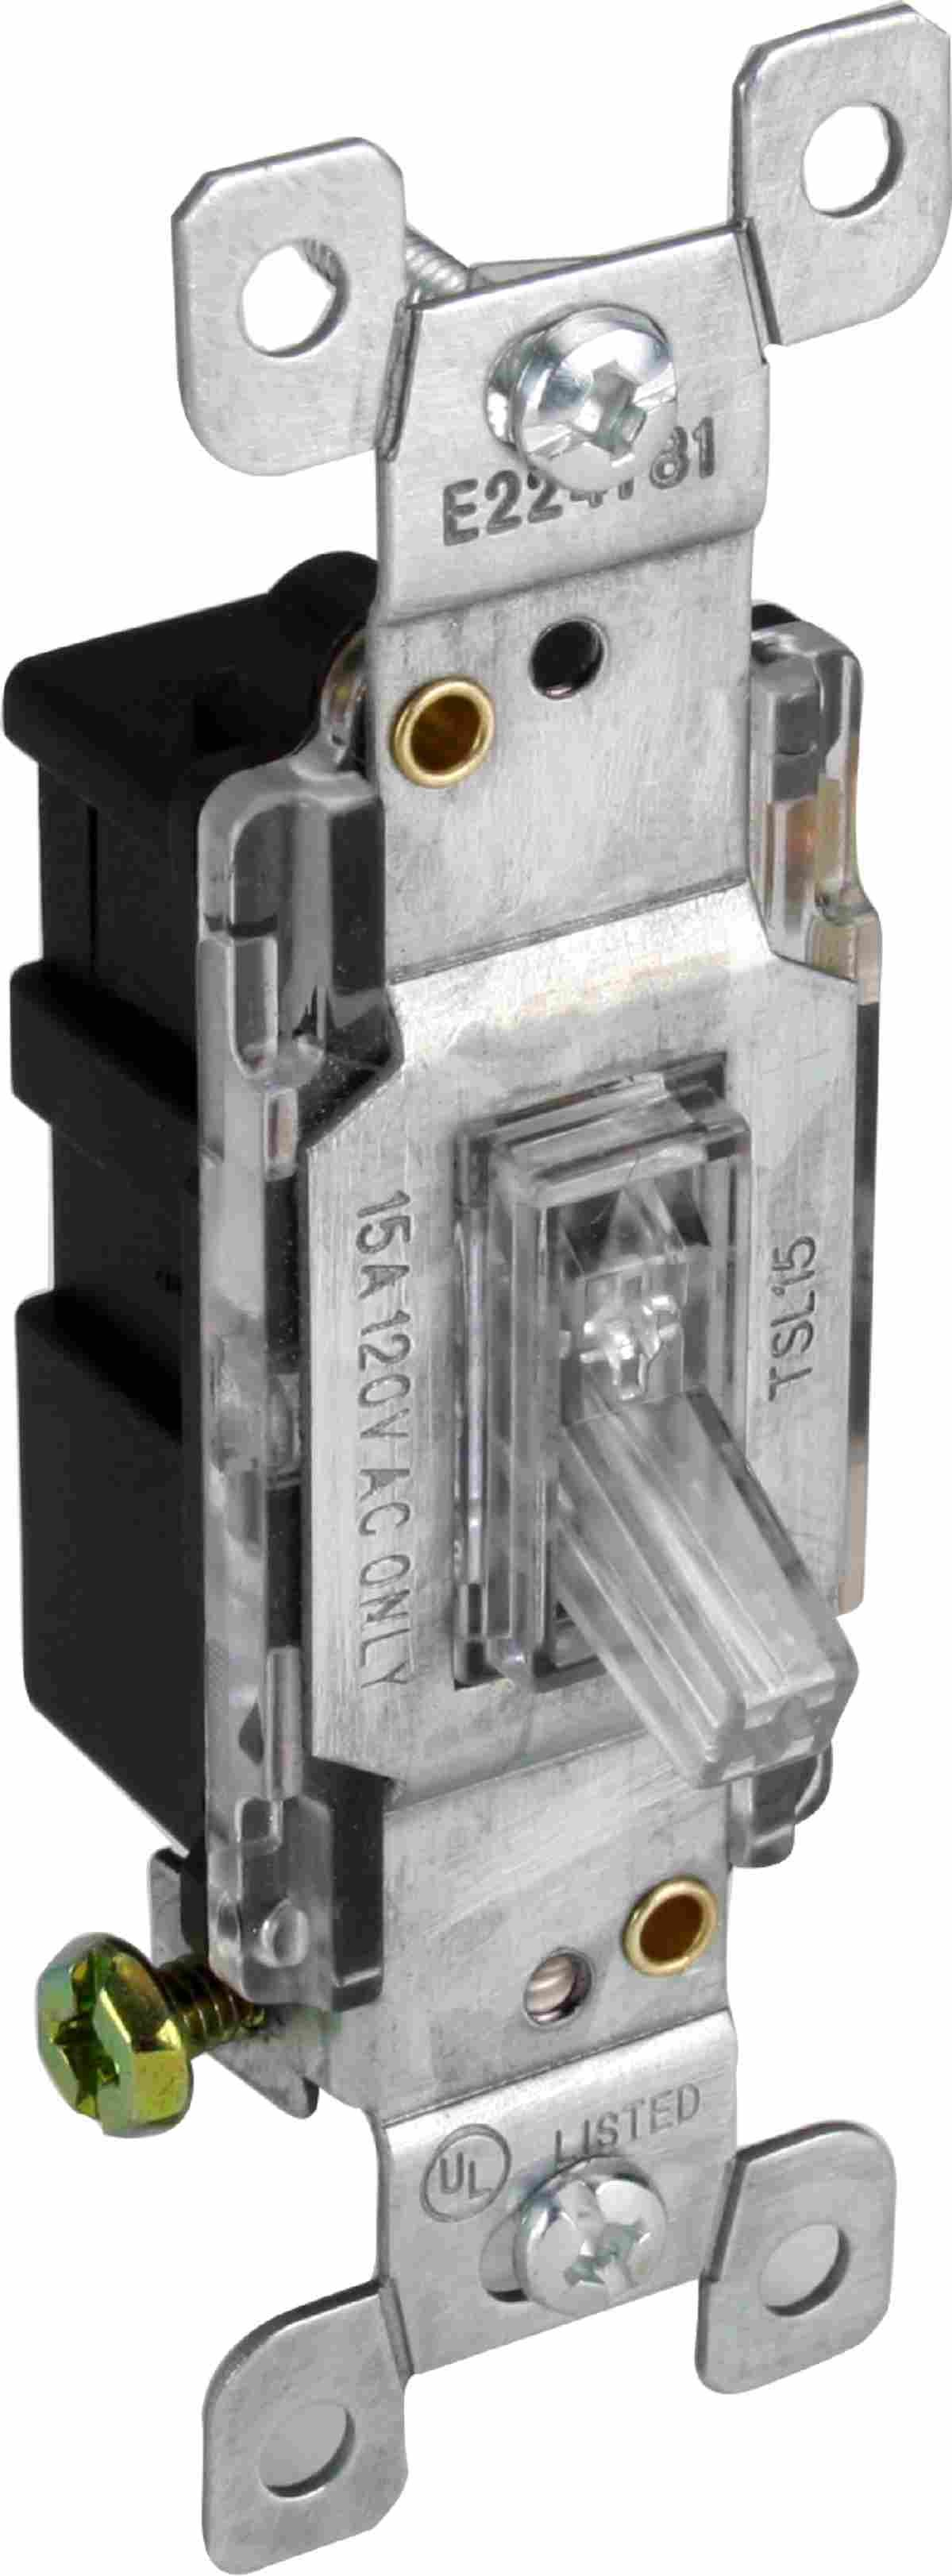 Orbit Tsl15 Cl Light Switch 15a Single Pole Toggle W Pilot Commercial Clear